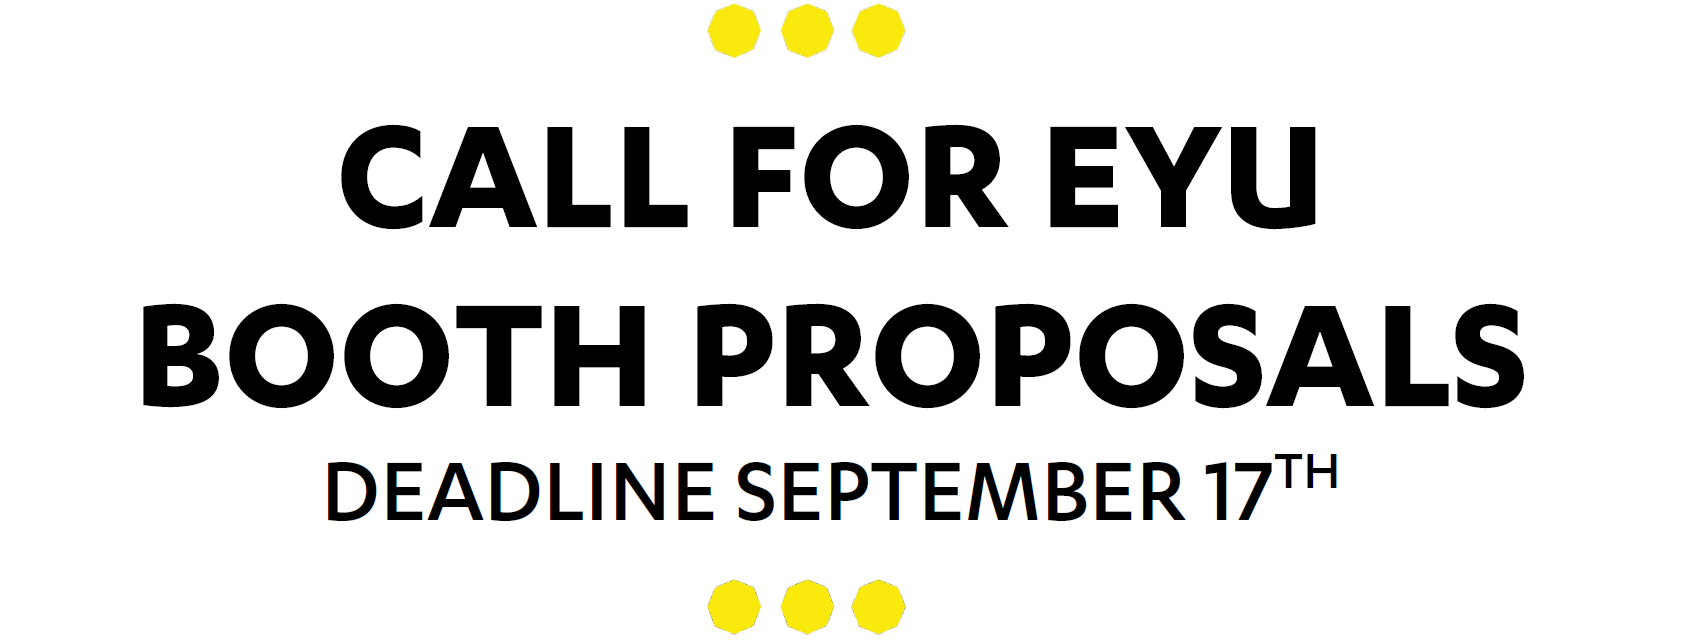 Booths that submit a proposal for EYU 2019 are eligible to receive up to $100 for selected brand-new presentations. To apply, submit a one-page document including the proposed booth activity, purpose/learning objective, resources required, and budget to  Jenelle Bossett-Allen  by Sept. 17. Notifications of accepted proposals will be sent out on Tuesday, Oct. 1.  We look forward to receiving your ideas!